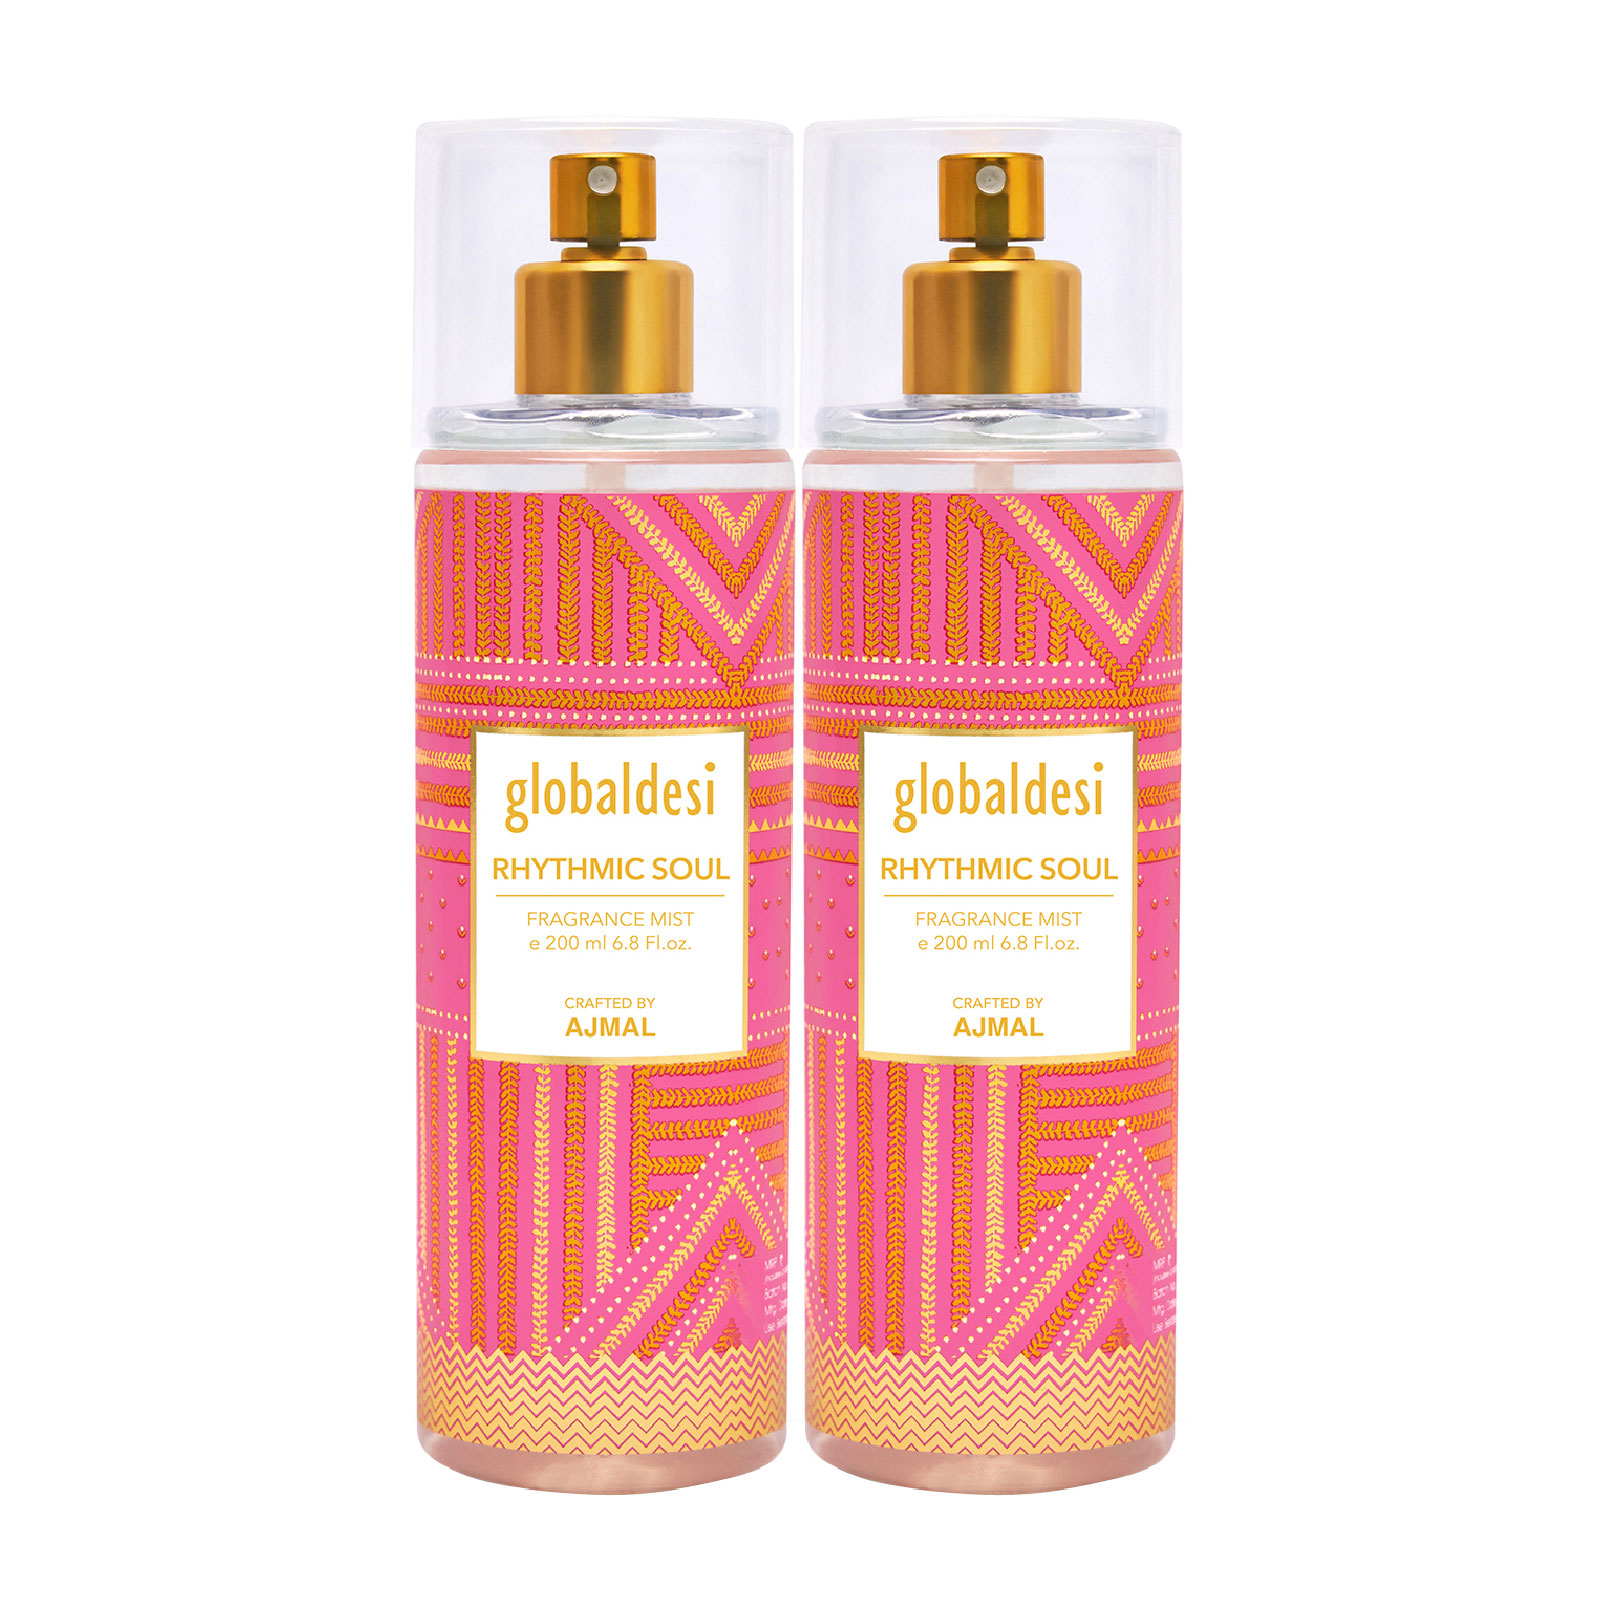 Global Desi Crafted By Ajmal | Global Desi Rhythmic Soul Pack of 2 Body Mist 200ML each for Women Crafted by Ajmal  + 2 Parfum Testers